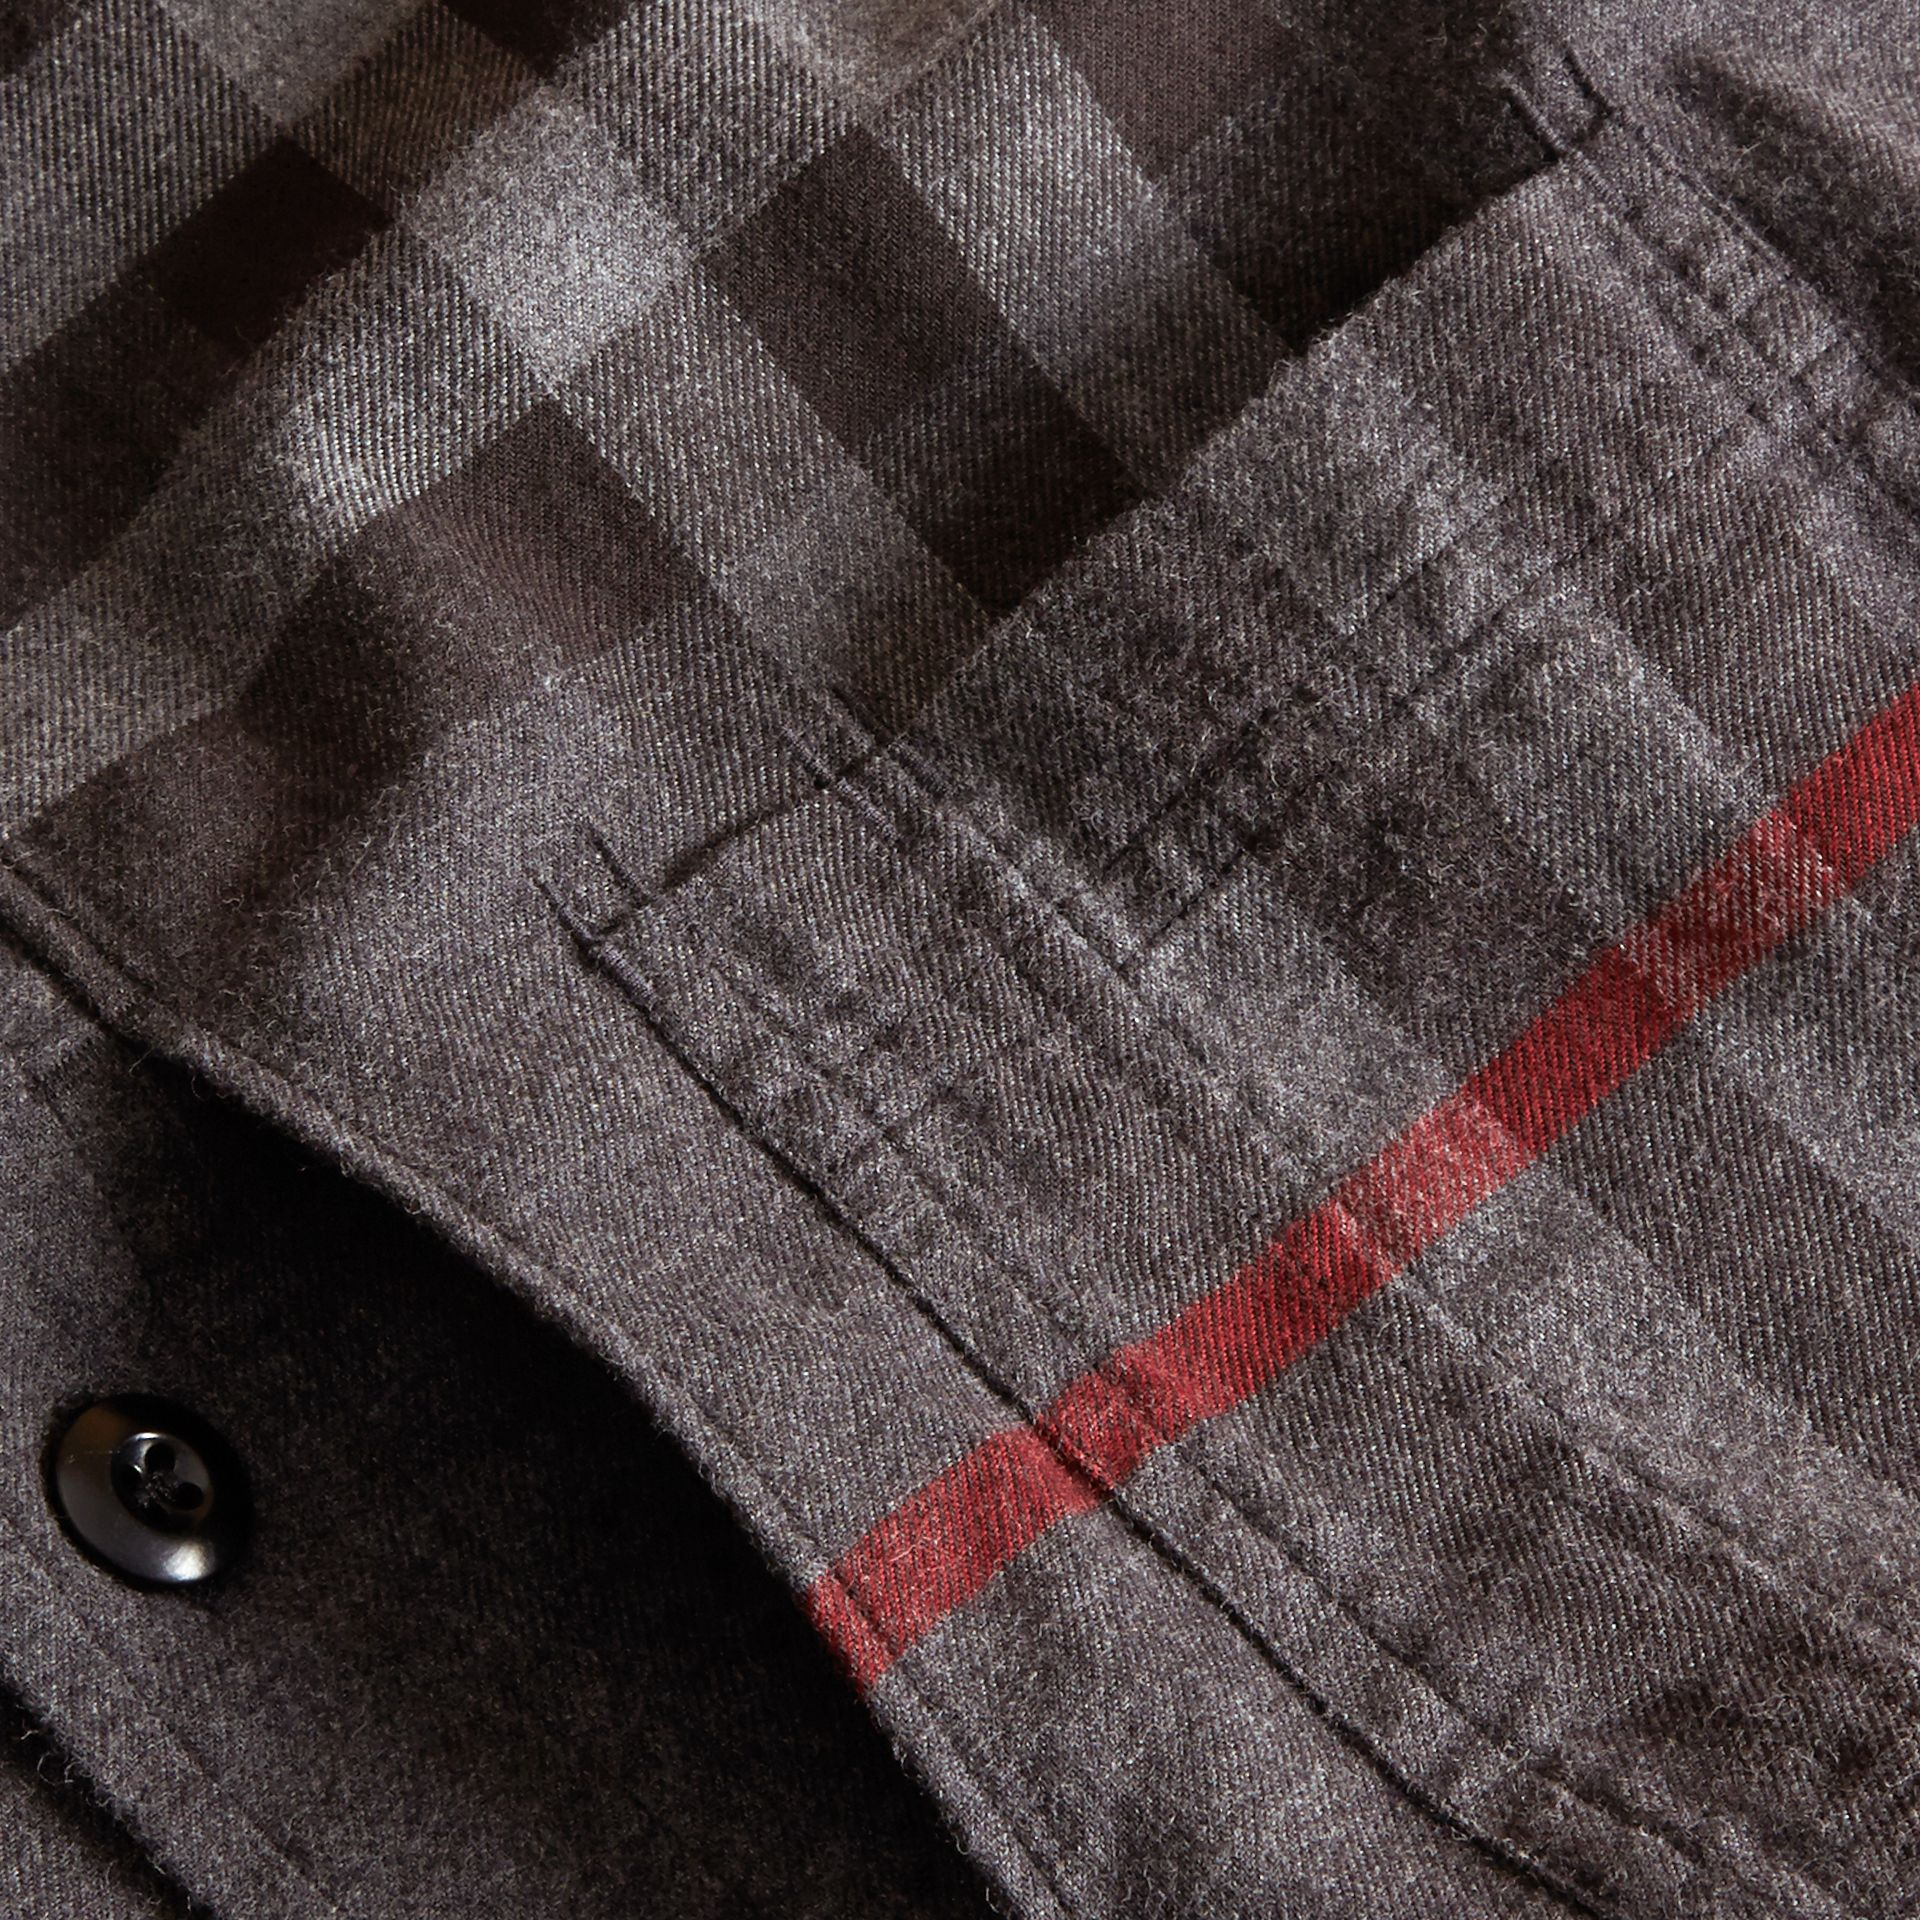 Charcoal melange Check Detail Cotton Flannel Shirt Charcoal Melange - gallery image 2